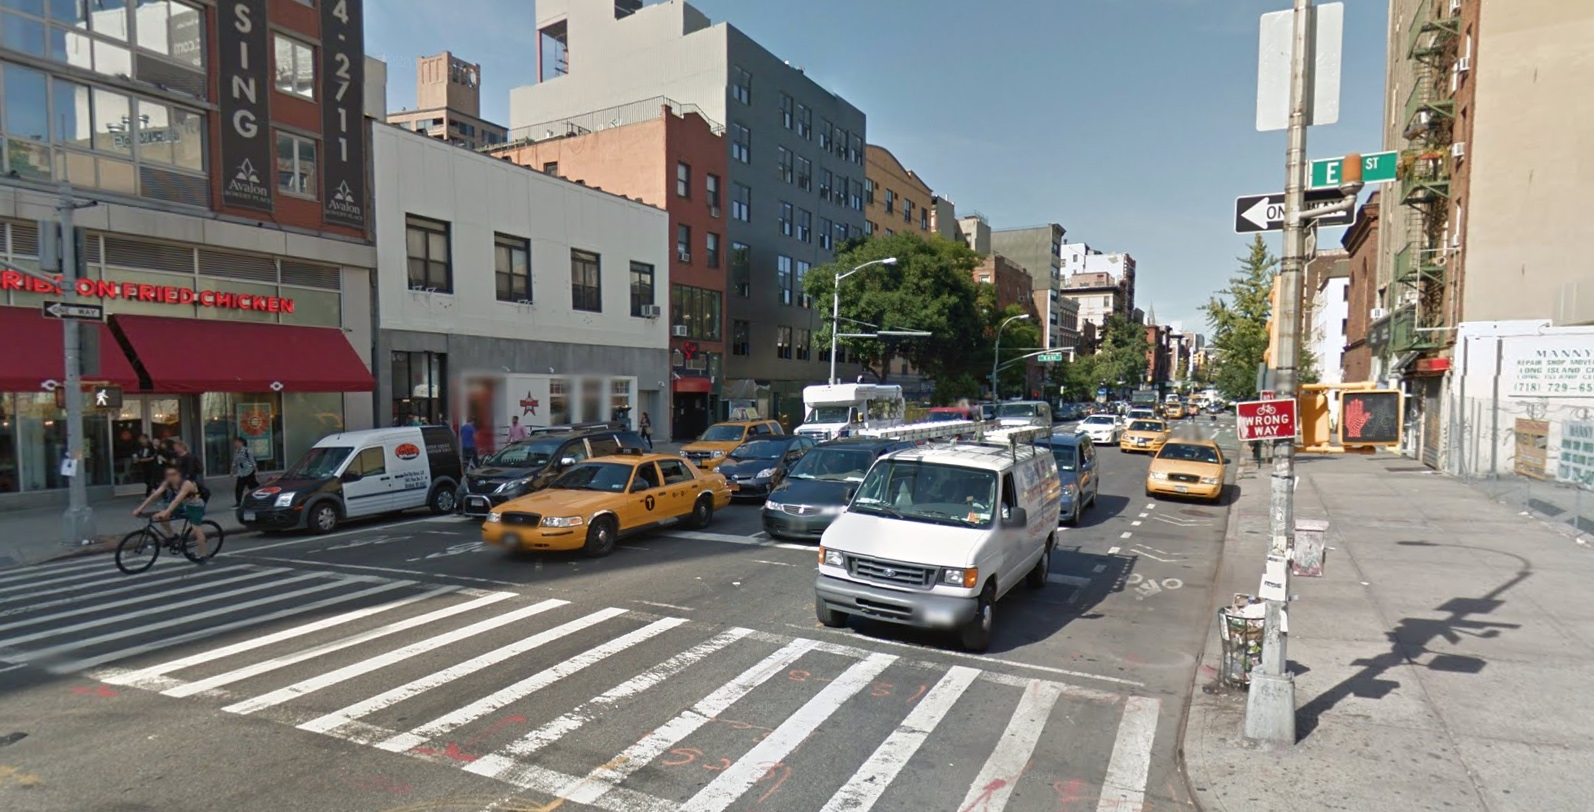 The street where Sam was struck. Note that the bike lane (currently occupied by a taxi)is merely striped here, not protected. (Image from Google Maps)